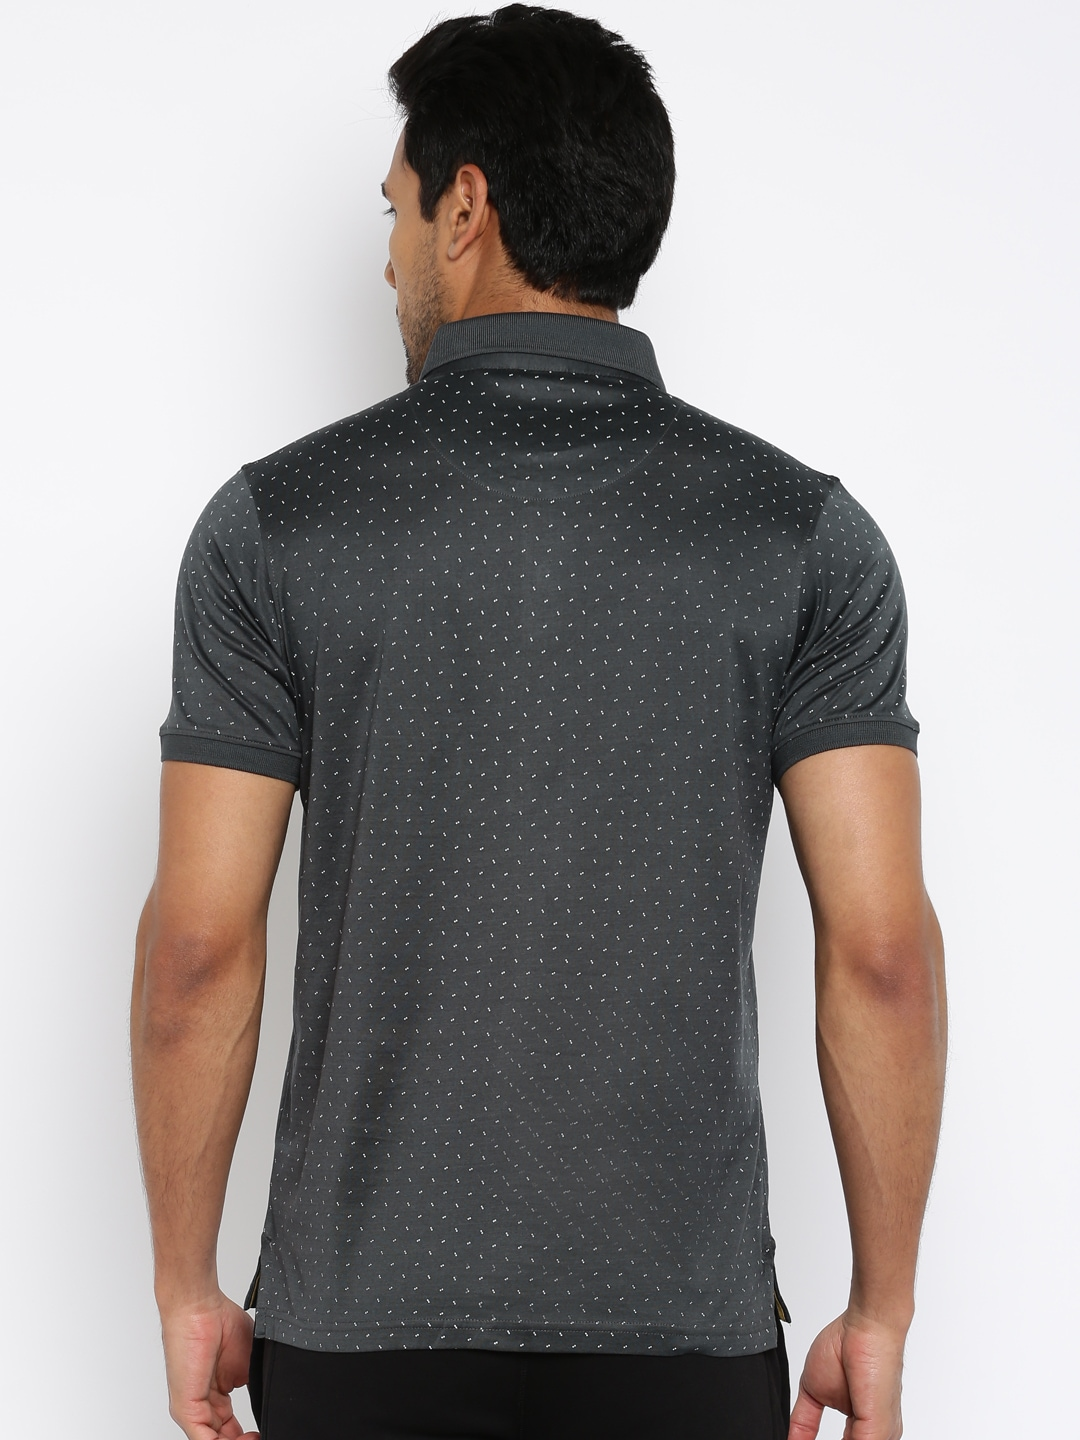 Design your own t shirt bangalore - Proline Tshirts Buy Proline Tshirts For Men Online In India At Best Price